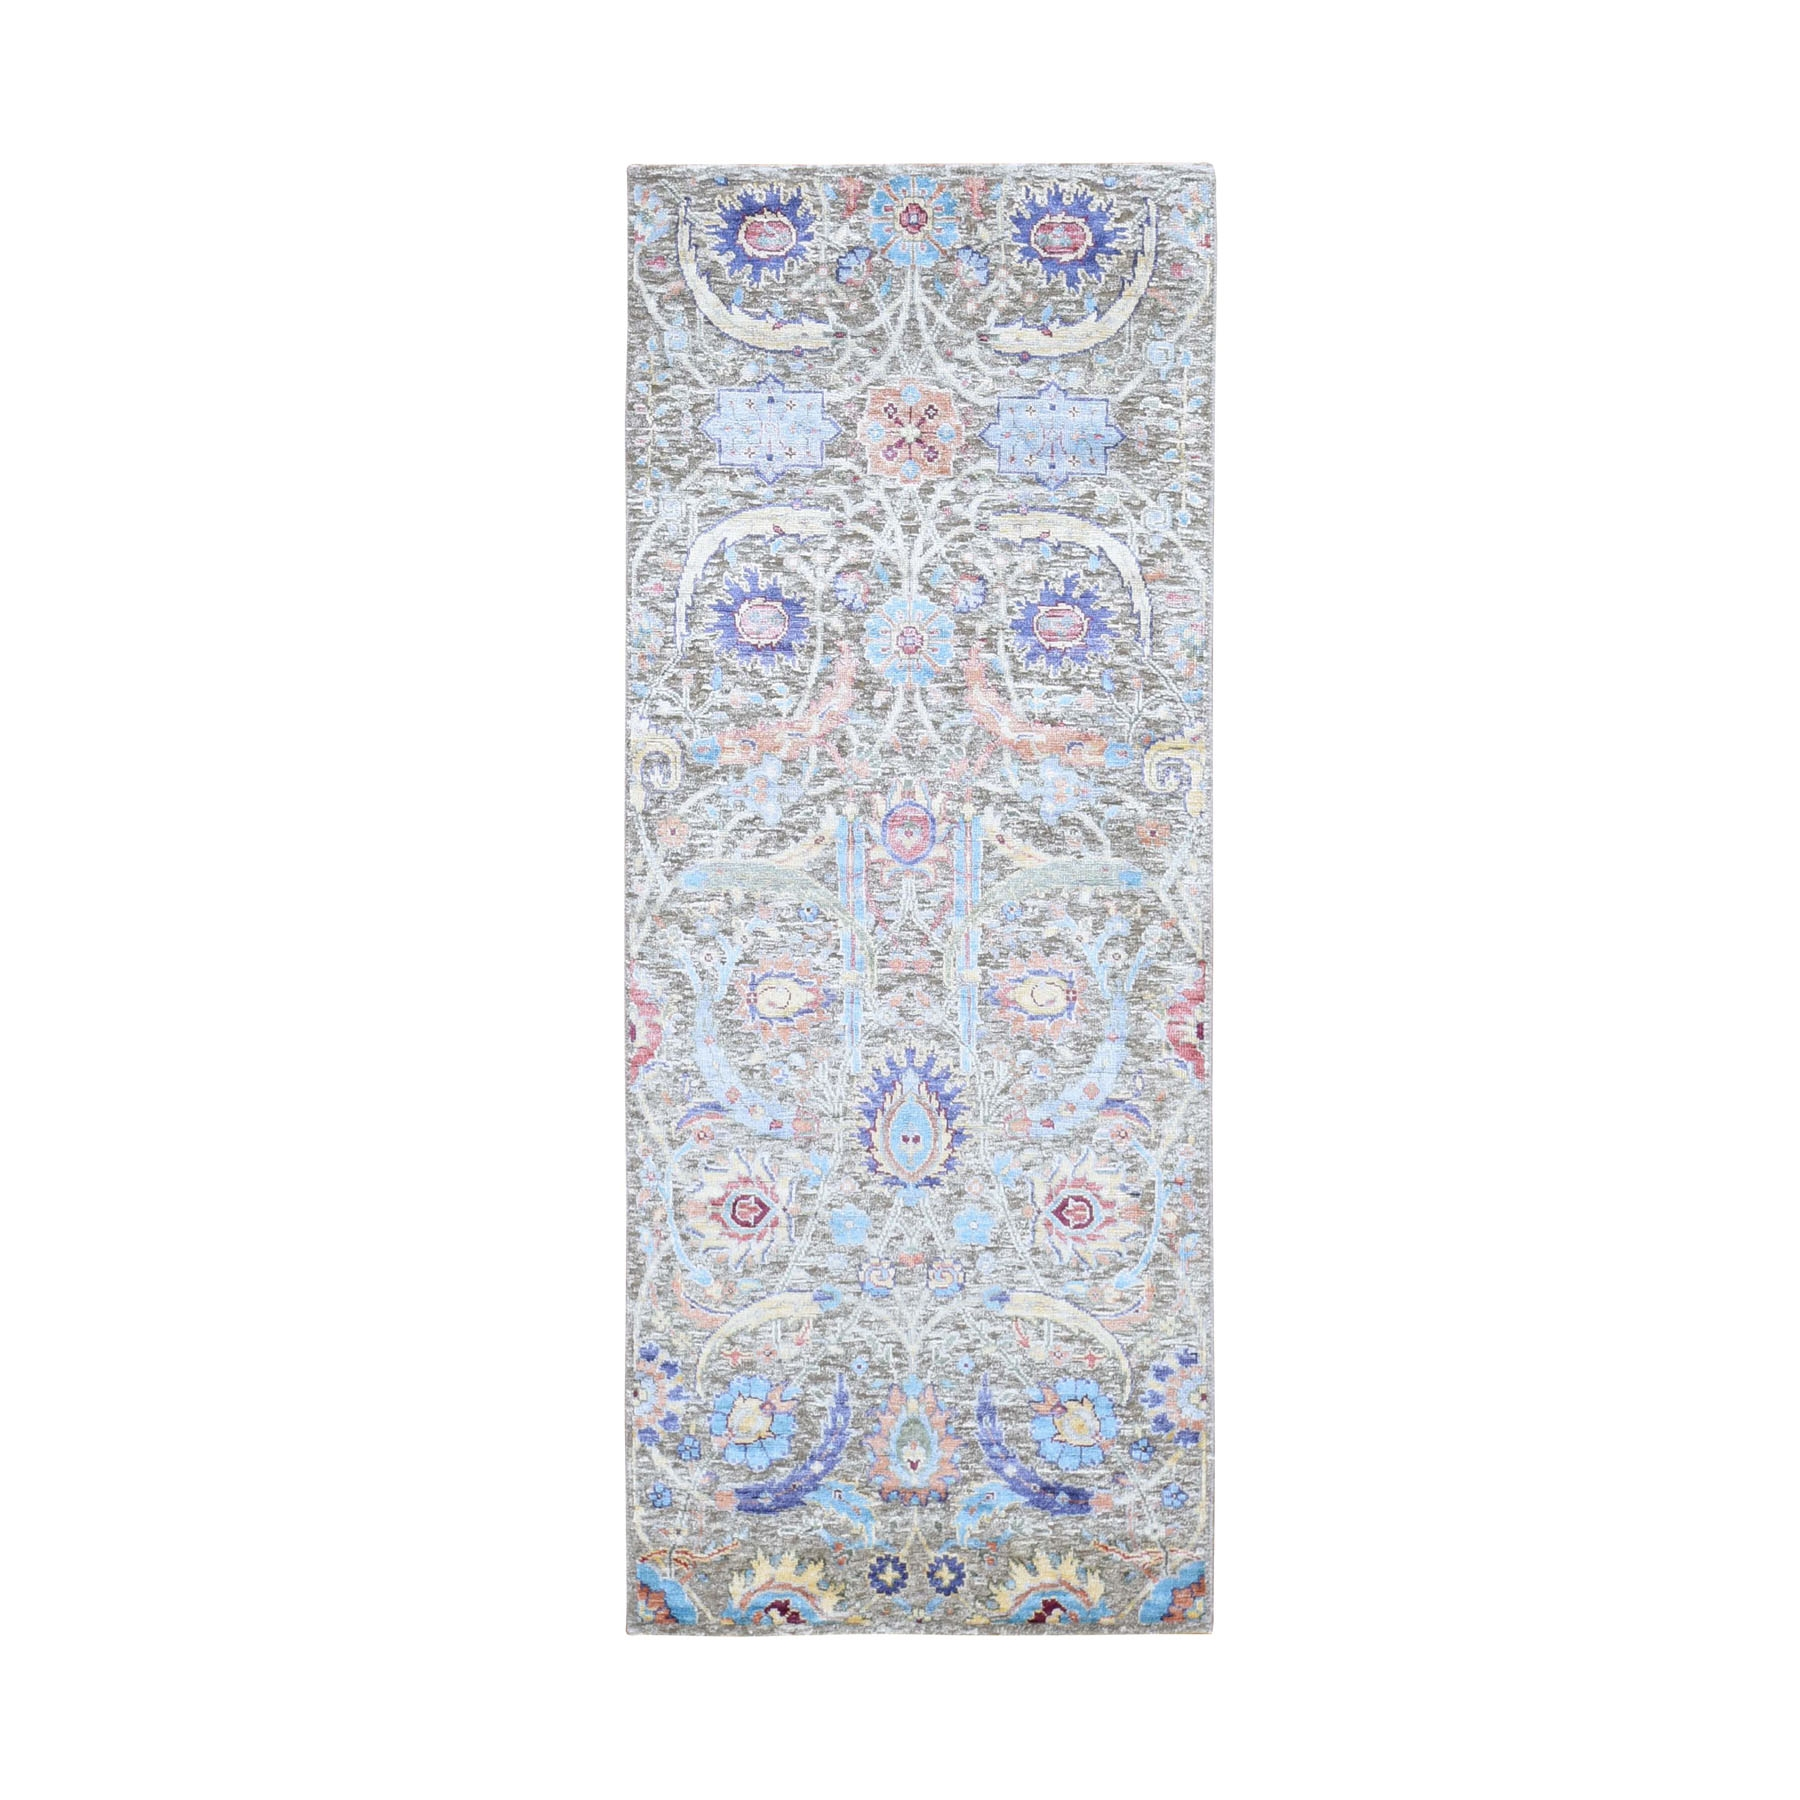 "2'5""x6'2"" Sickle Leaf Design Silk With Textured Wool Runner Hand Knotted Oriental Rug"